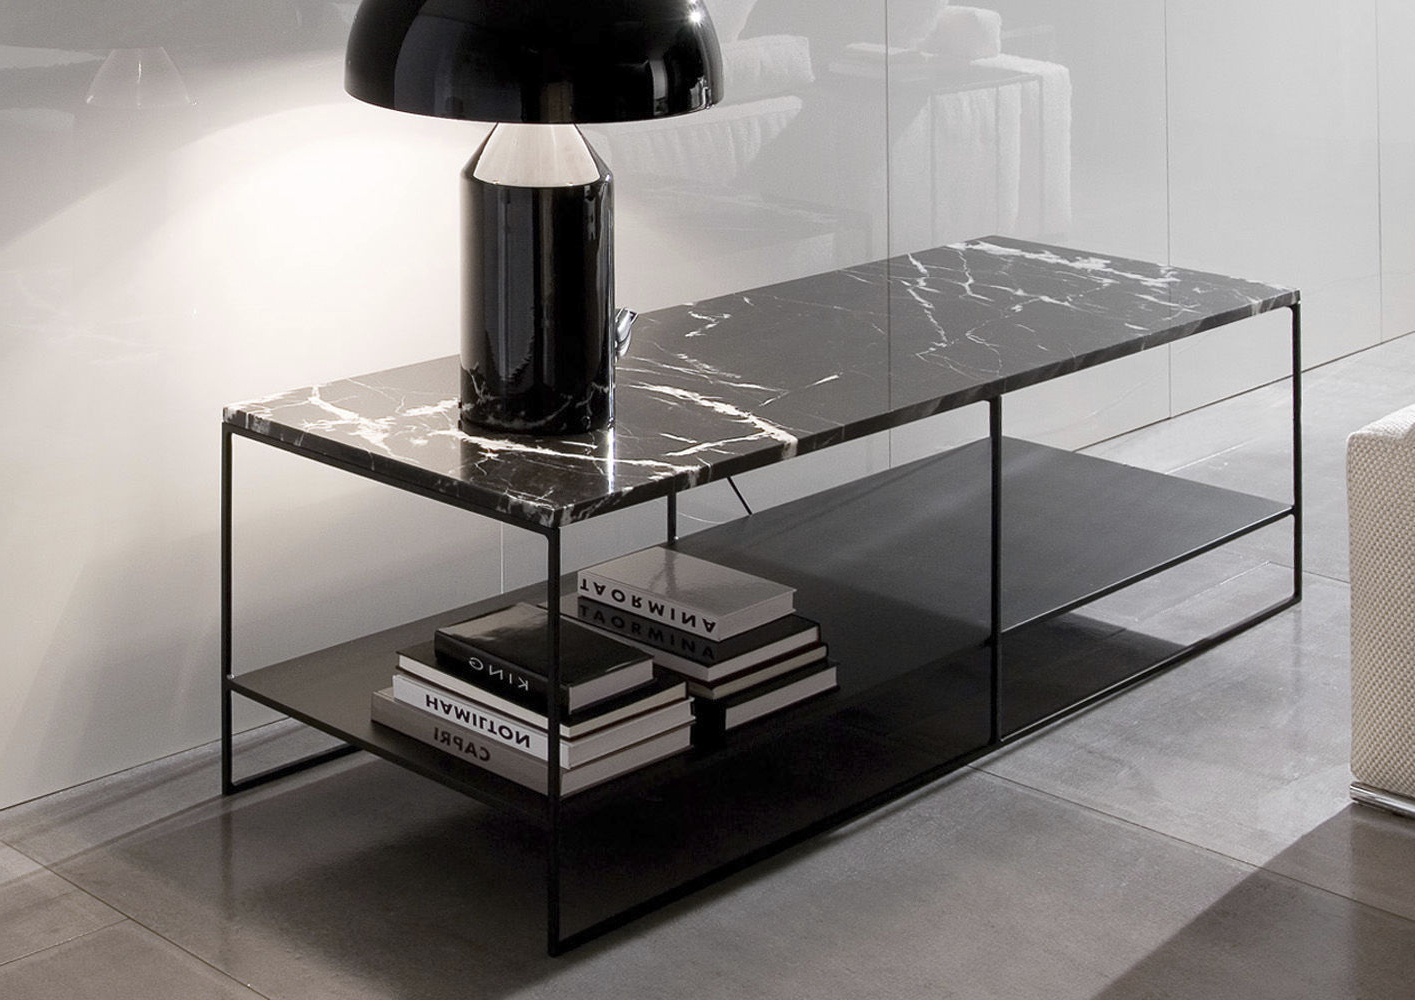 Dark Smoked Oak With White Marble Top Sideboards Inside Well Known Contemporary Sideboard Table / Marble / Oak / Iron – Calder – Minotti (View 4 of 20)